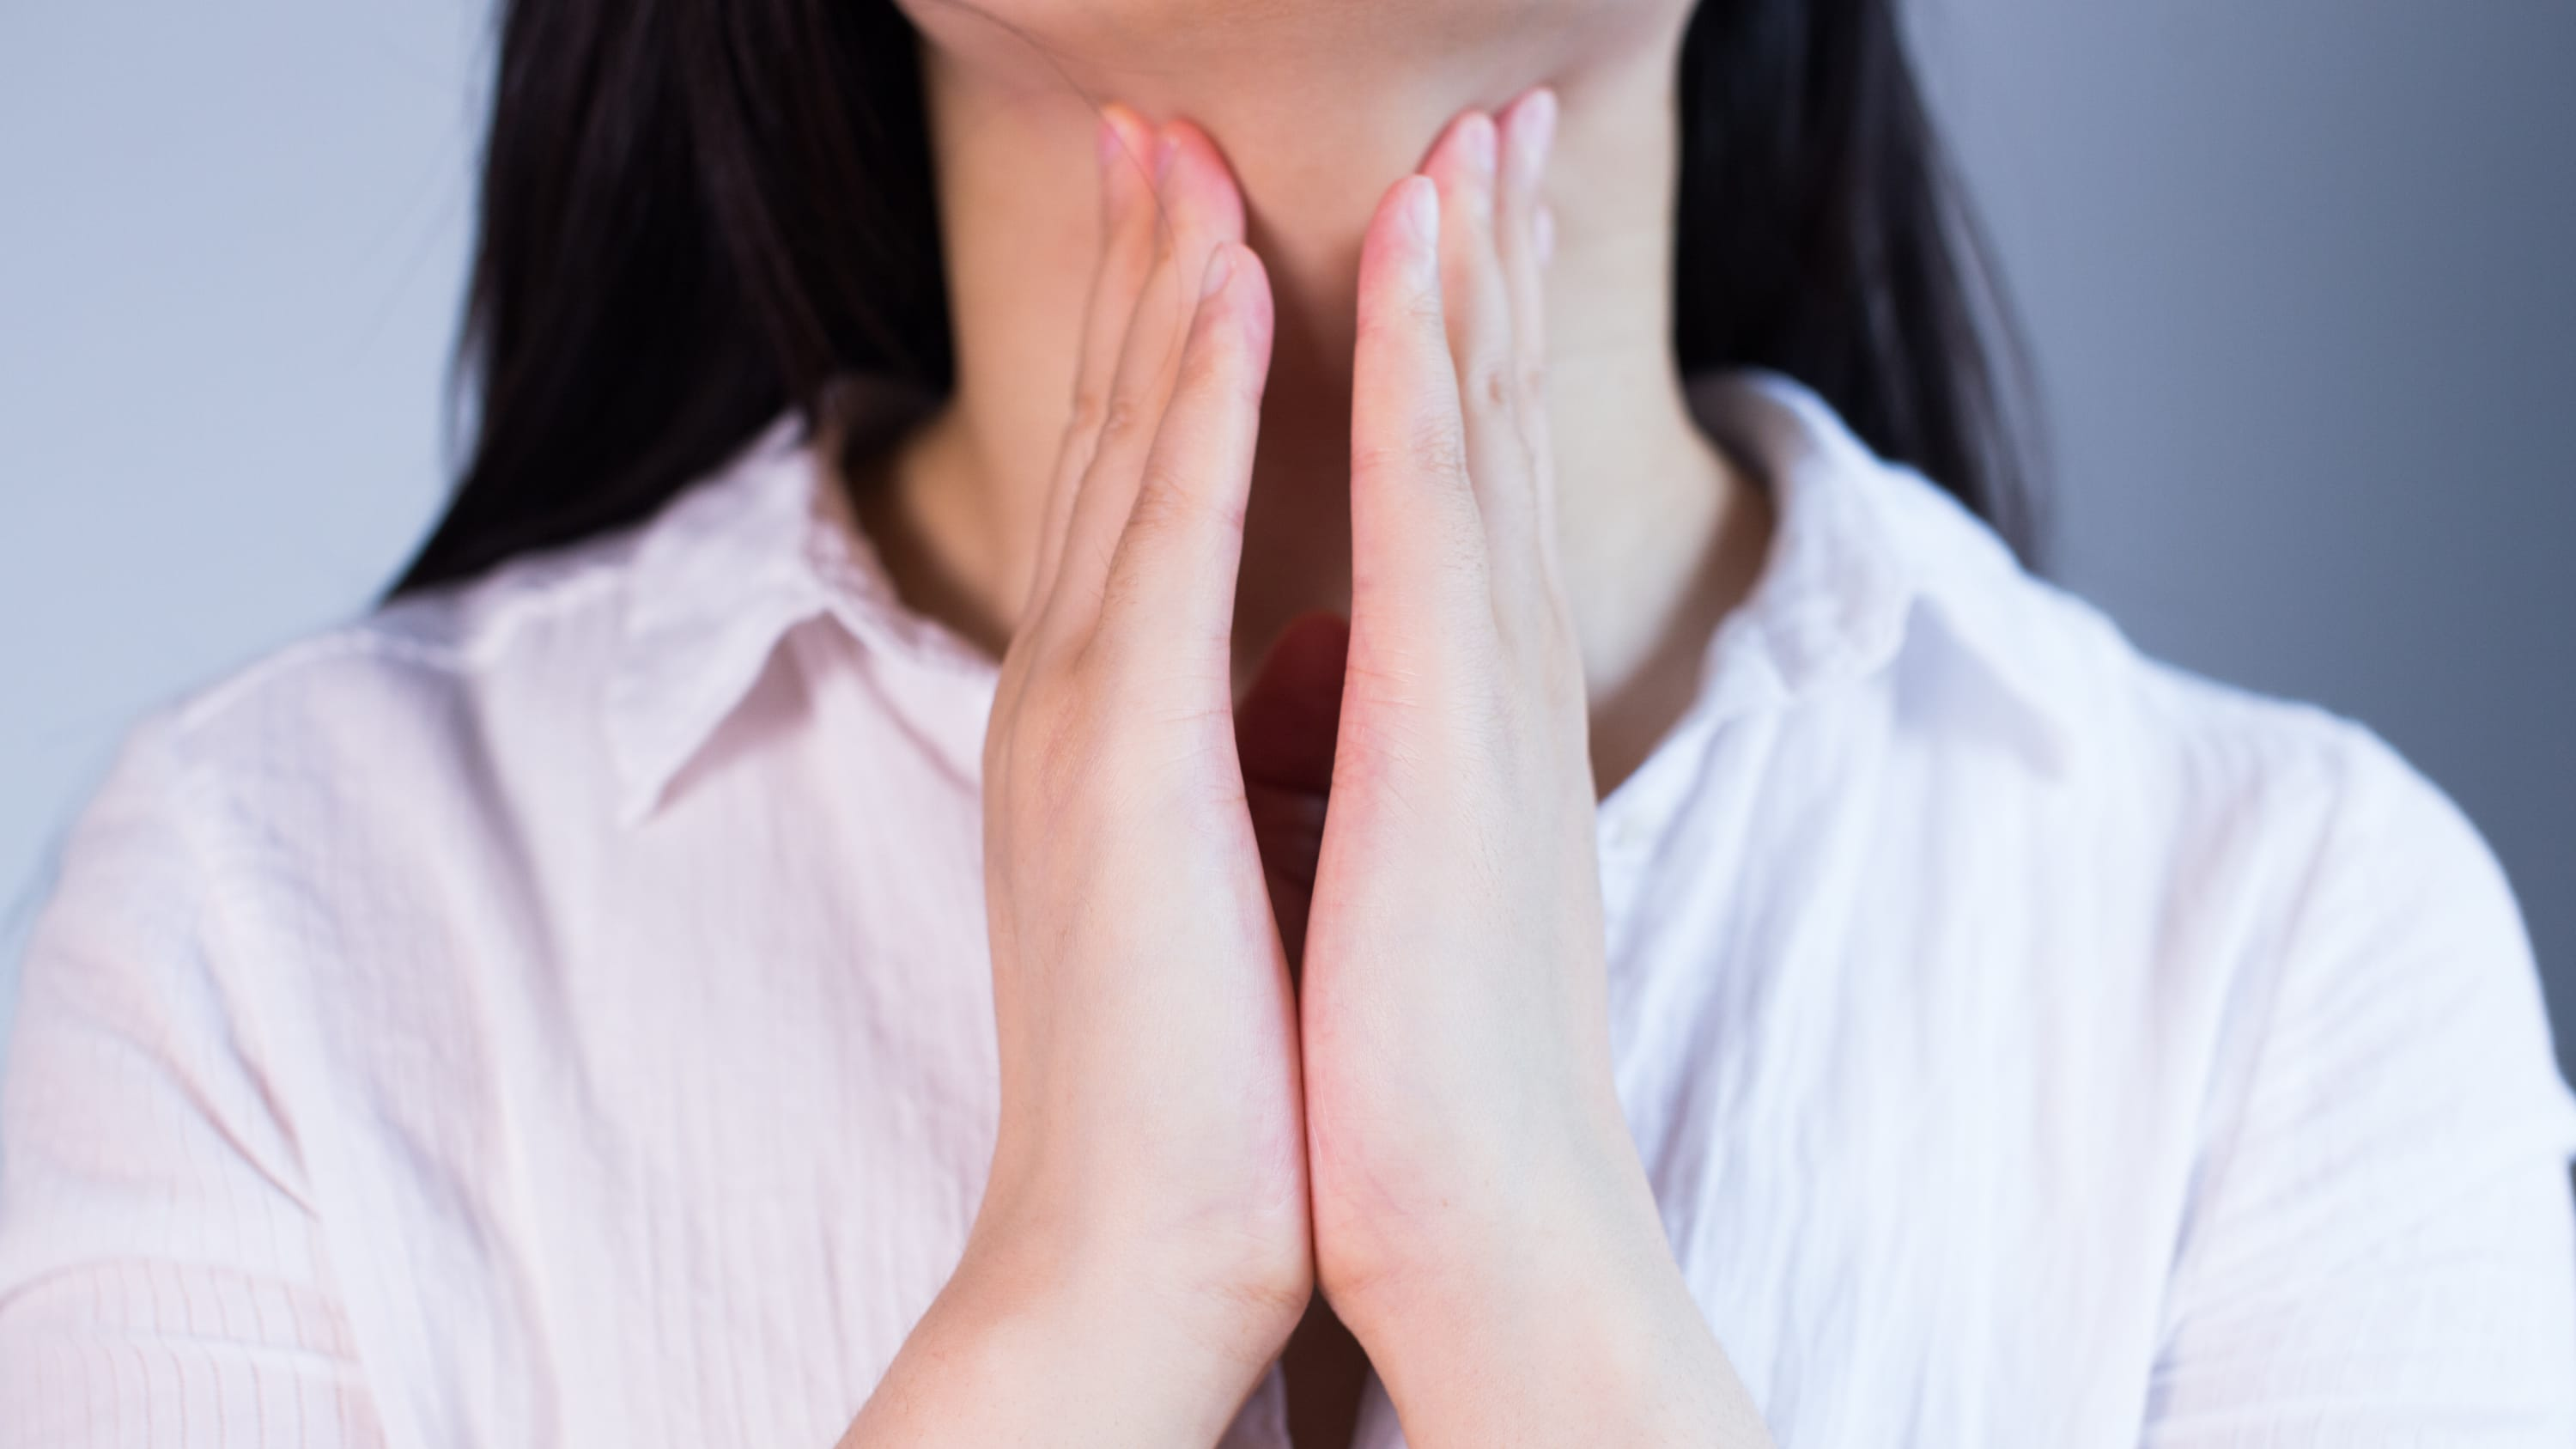 A woman concerned about thyroid cancer touches her thyroid, she is wearing a blouse her face is not visible.